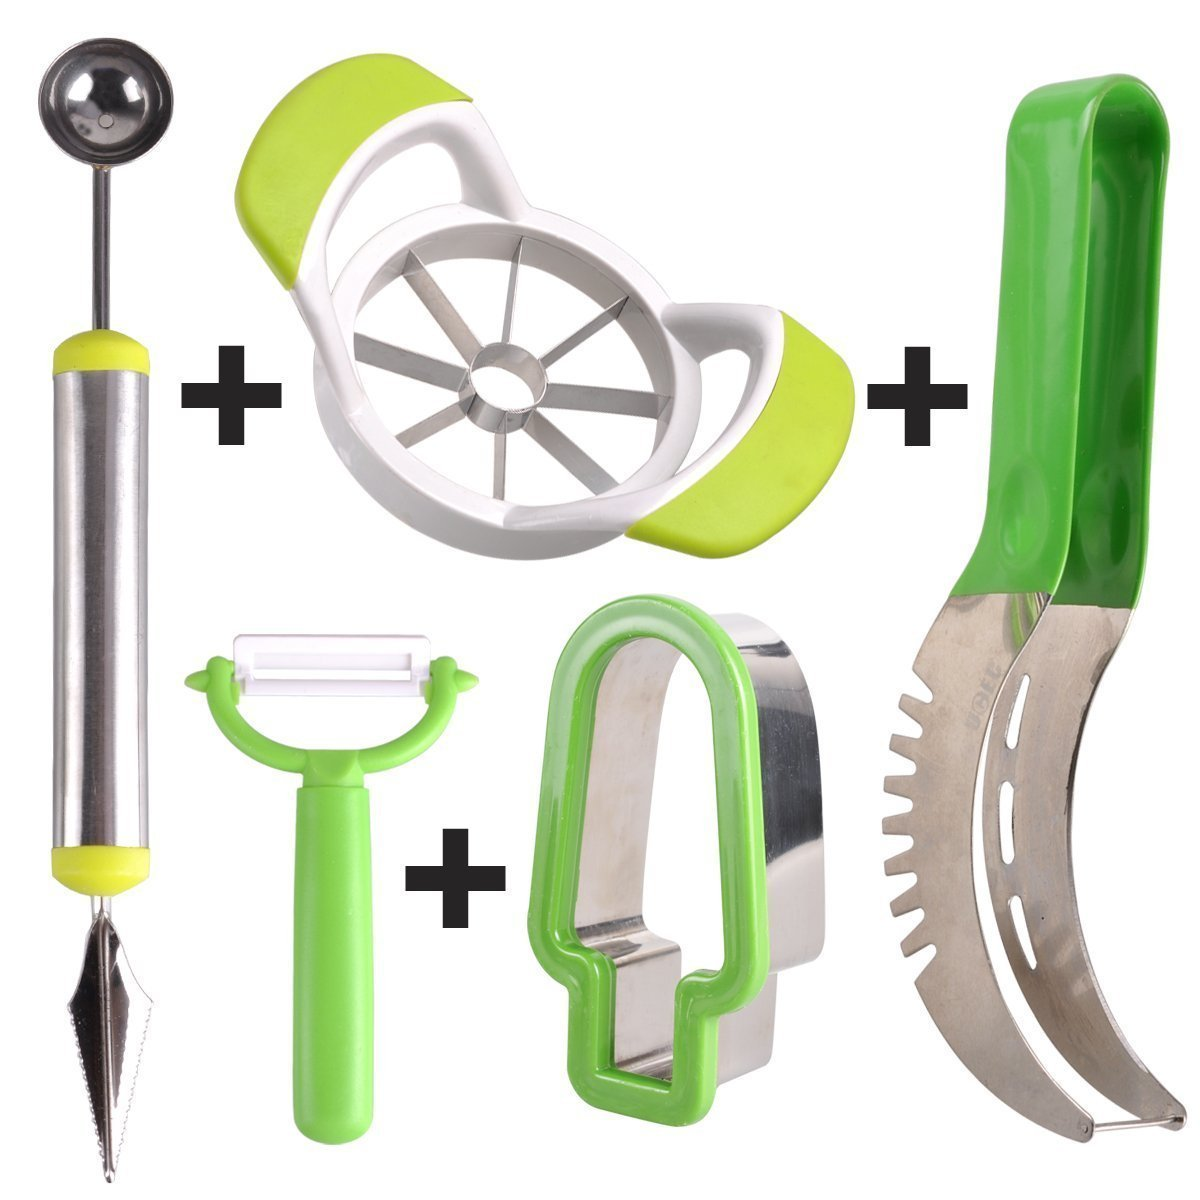 UCEC 5 in 1 Melon Slicer,Melon Cutter, Melon Baller and Fruit Carving Knife, Safe & Sturdy for Family, Party Used